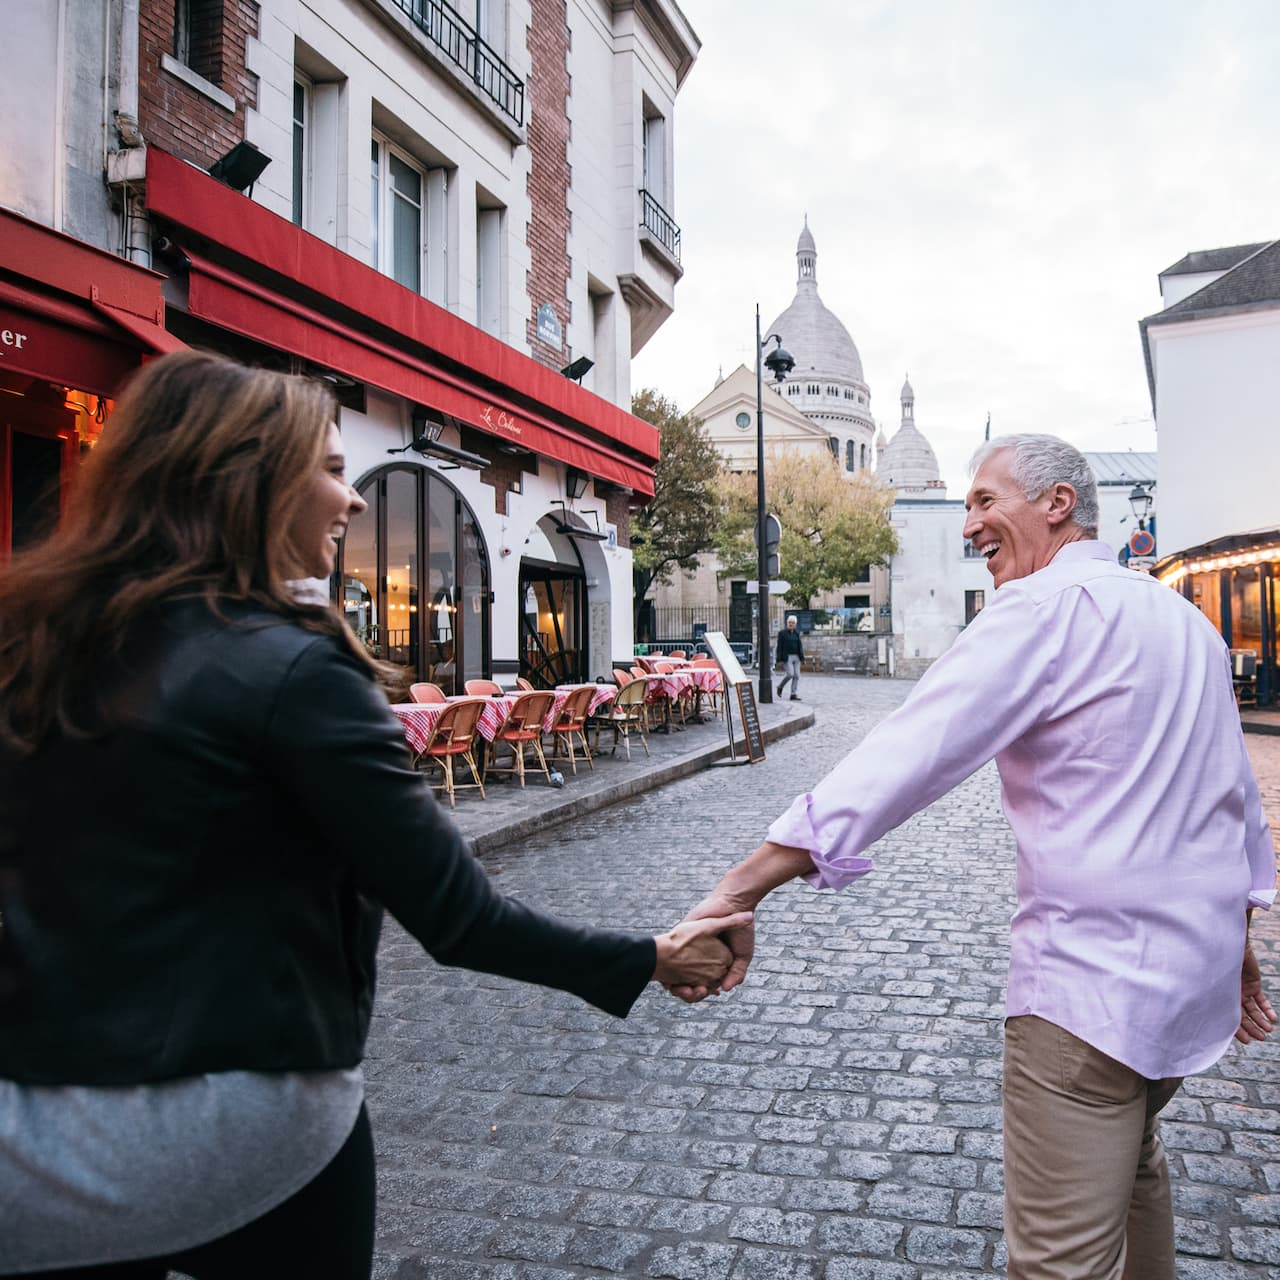 A couple walks past outdoor cafés on the cobblestone streets of Montmartre, France with the domed Sacré-Cœur basilica in the background